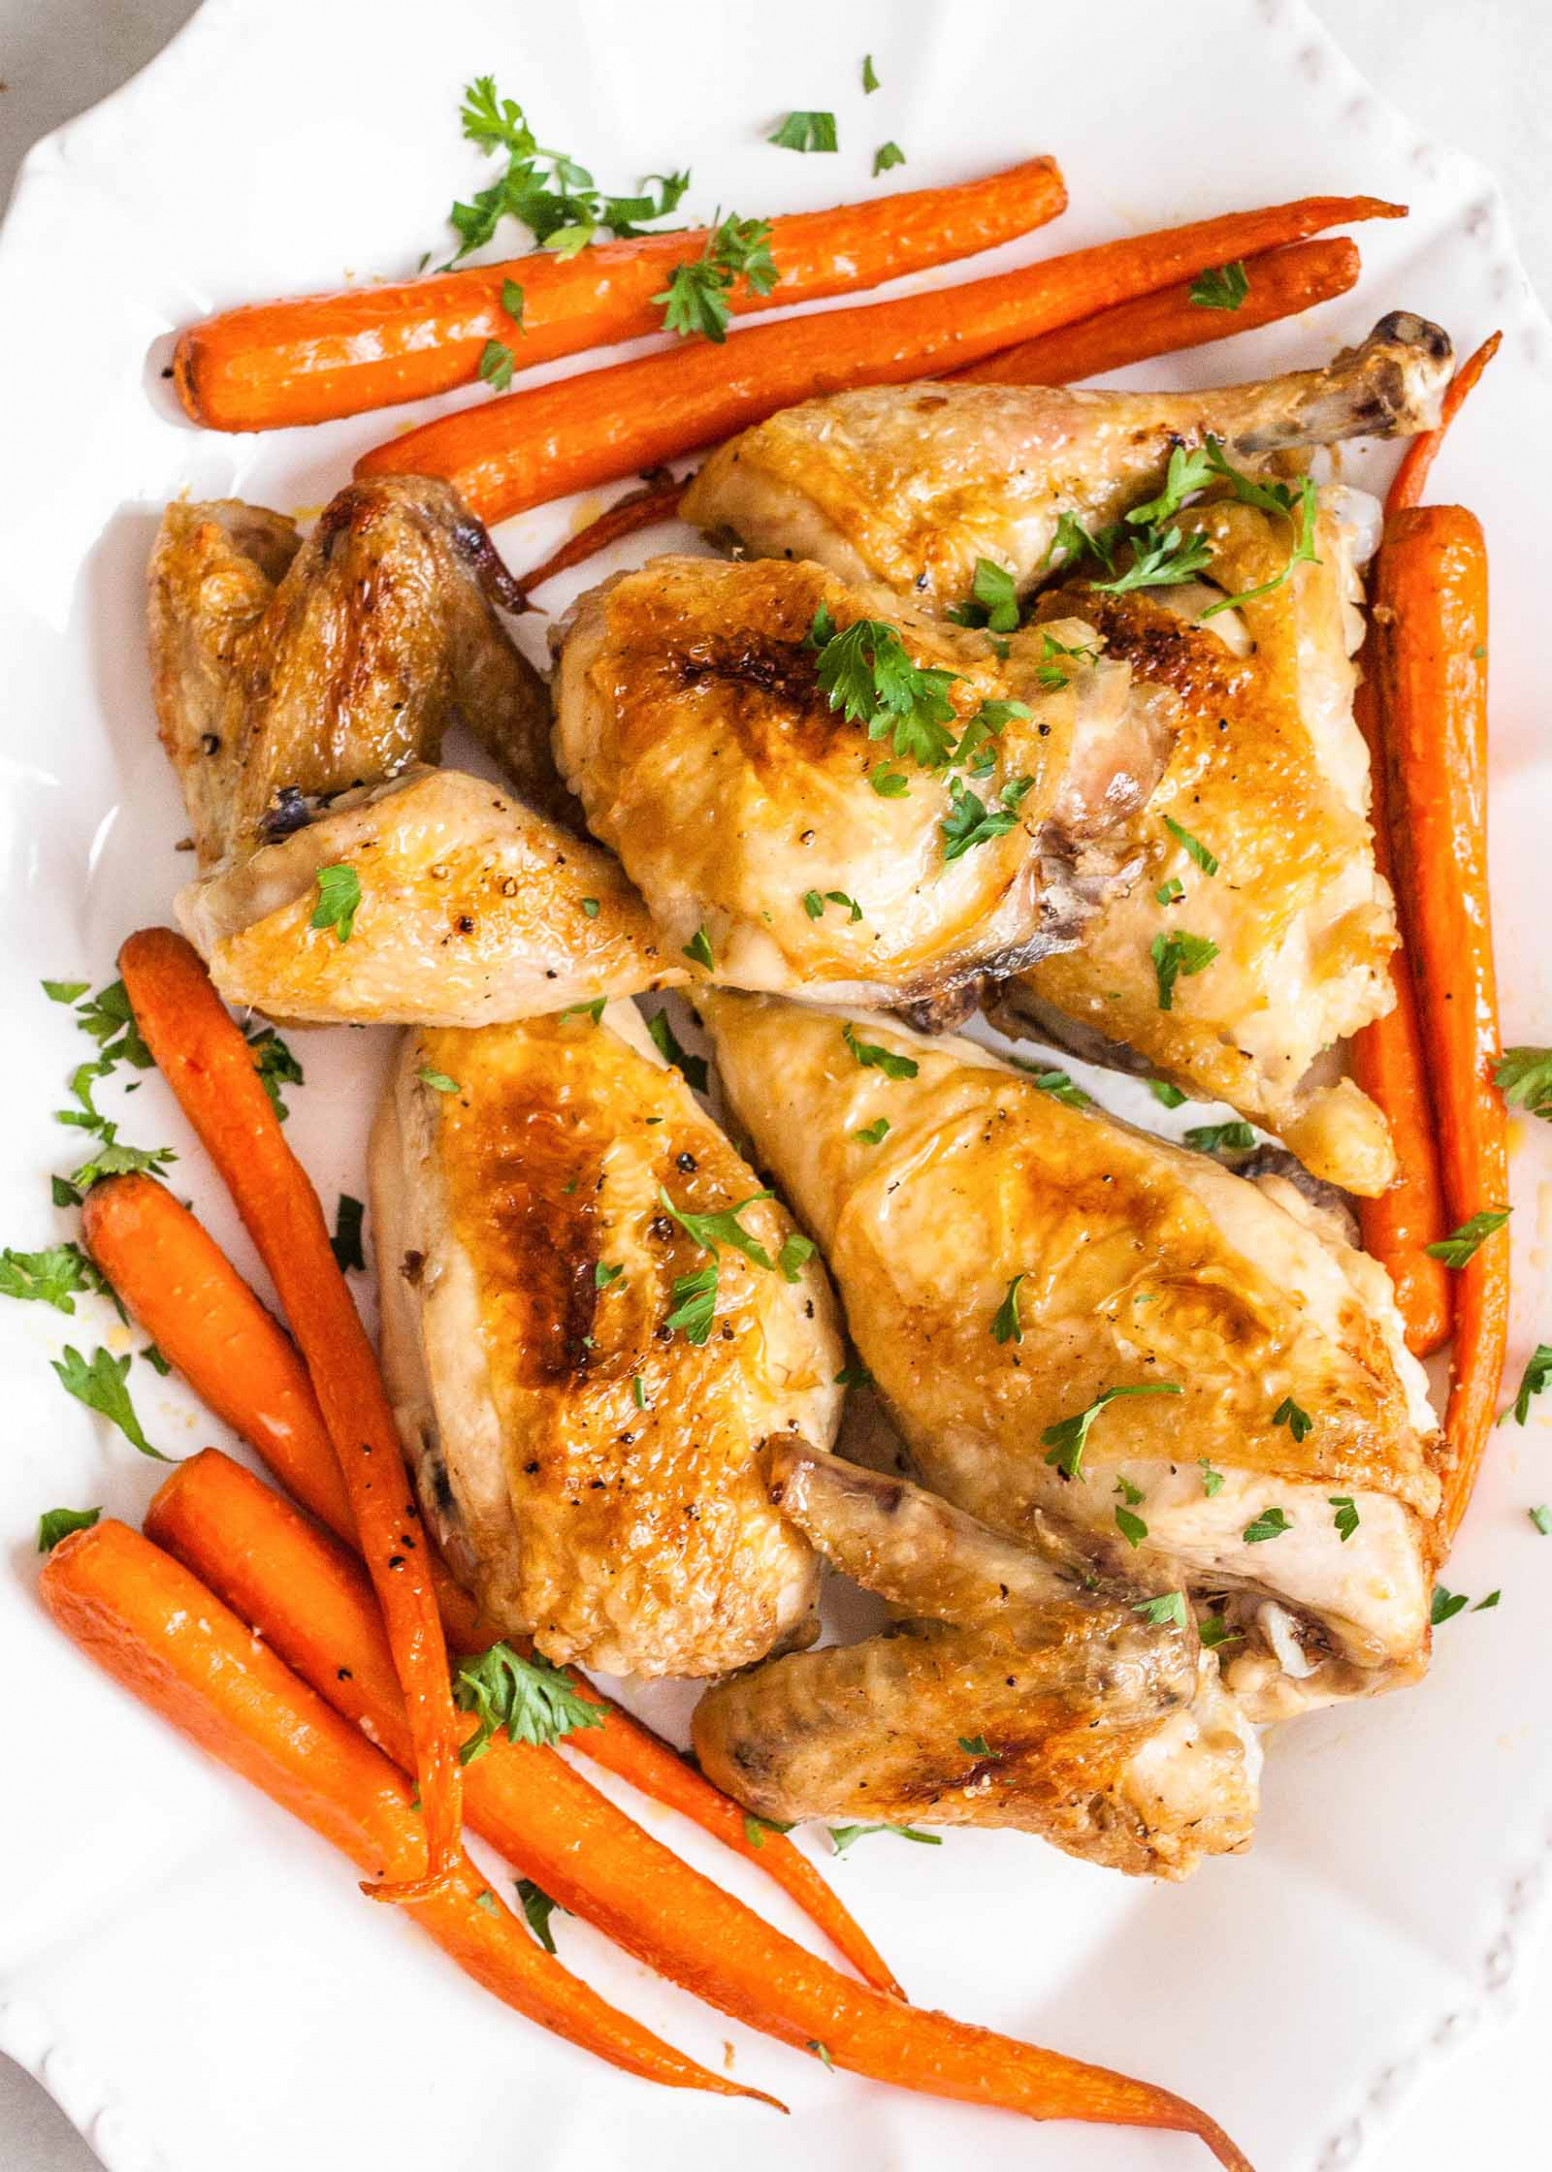 Classic Baked Chicken - recipes baked chicken breast